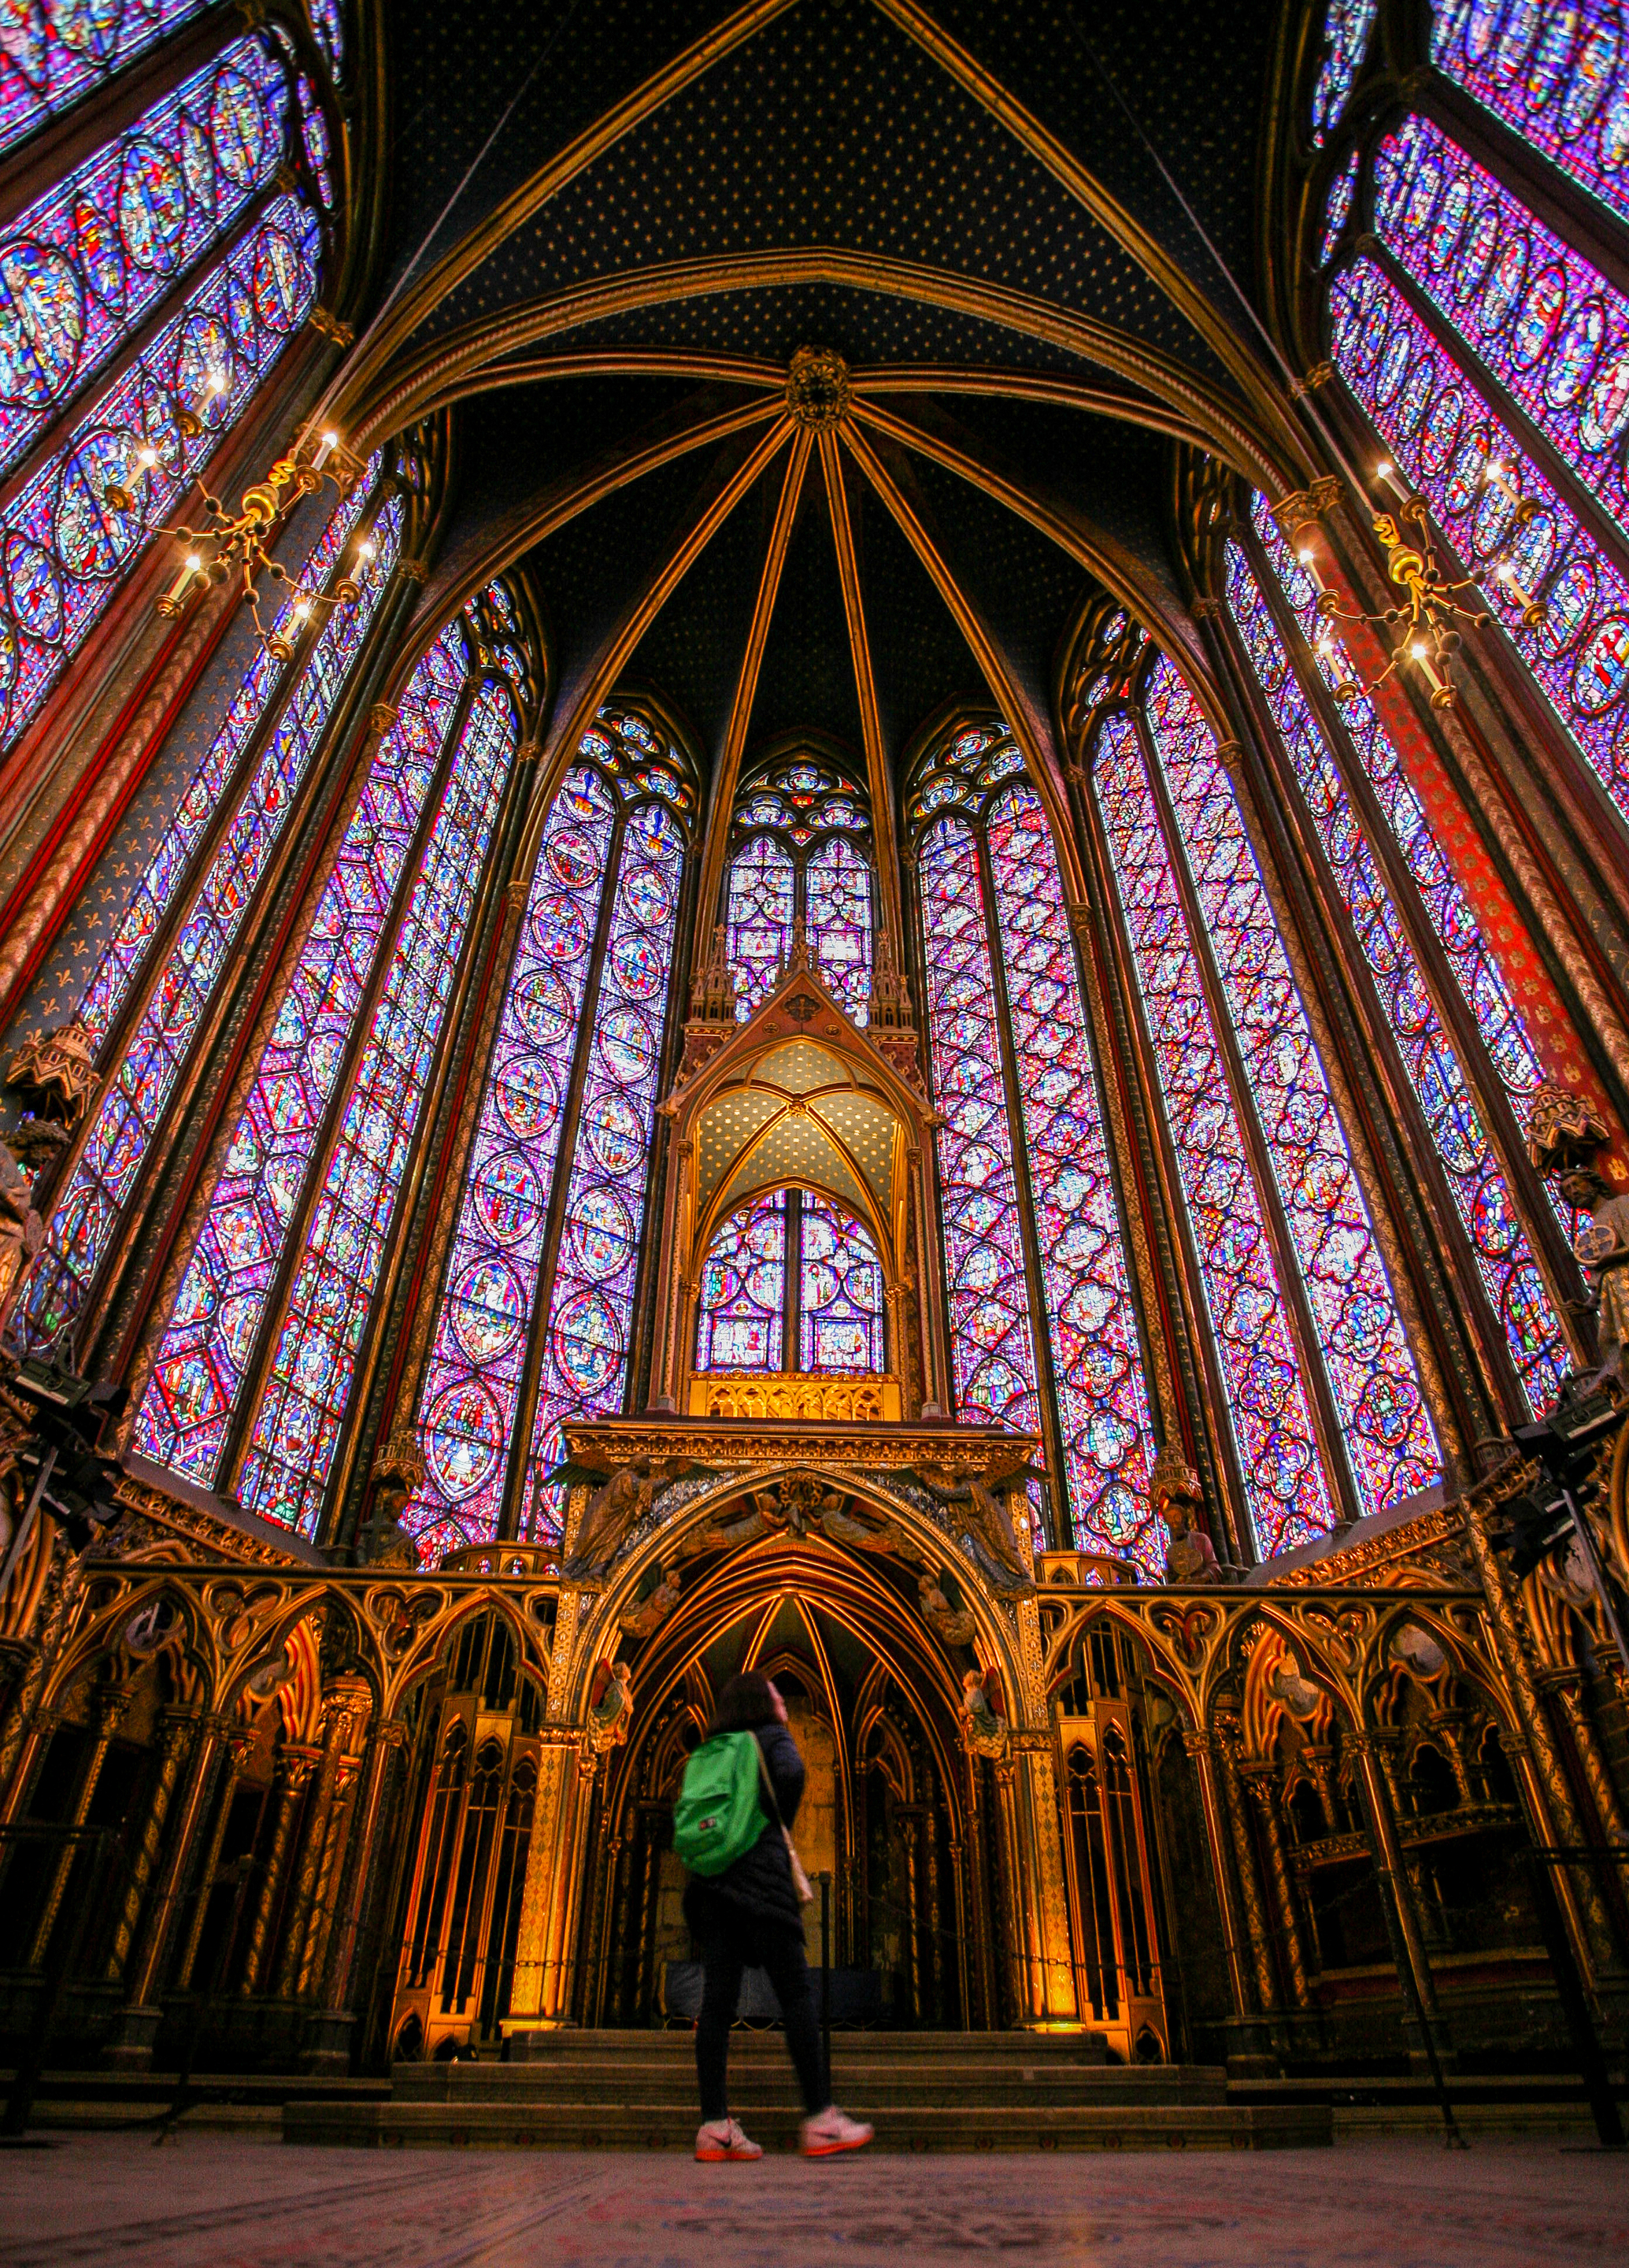 La Sainte-Chapelle%252C Paris 2015 D.Bordes%252C CMN%252C Paris